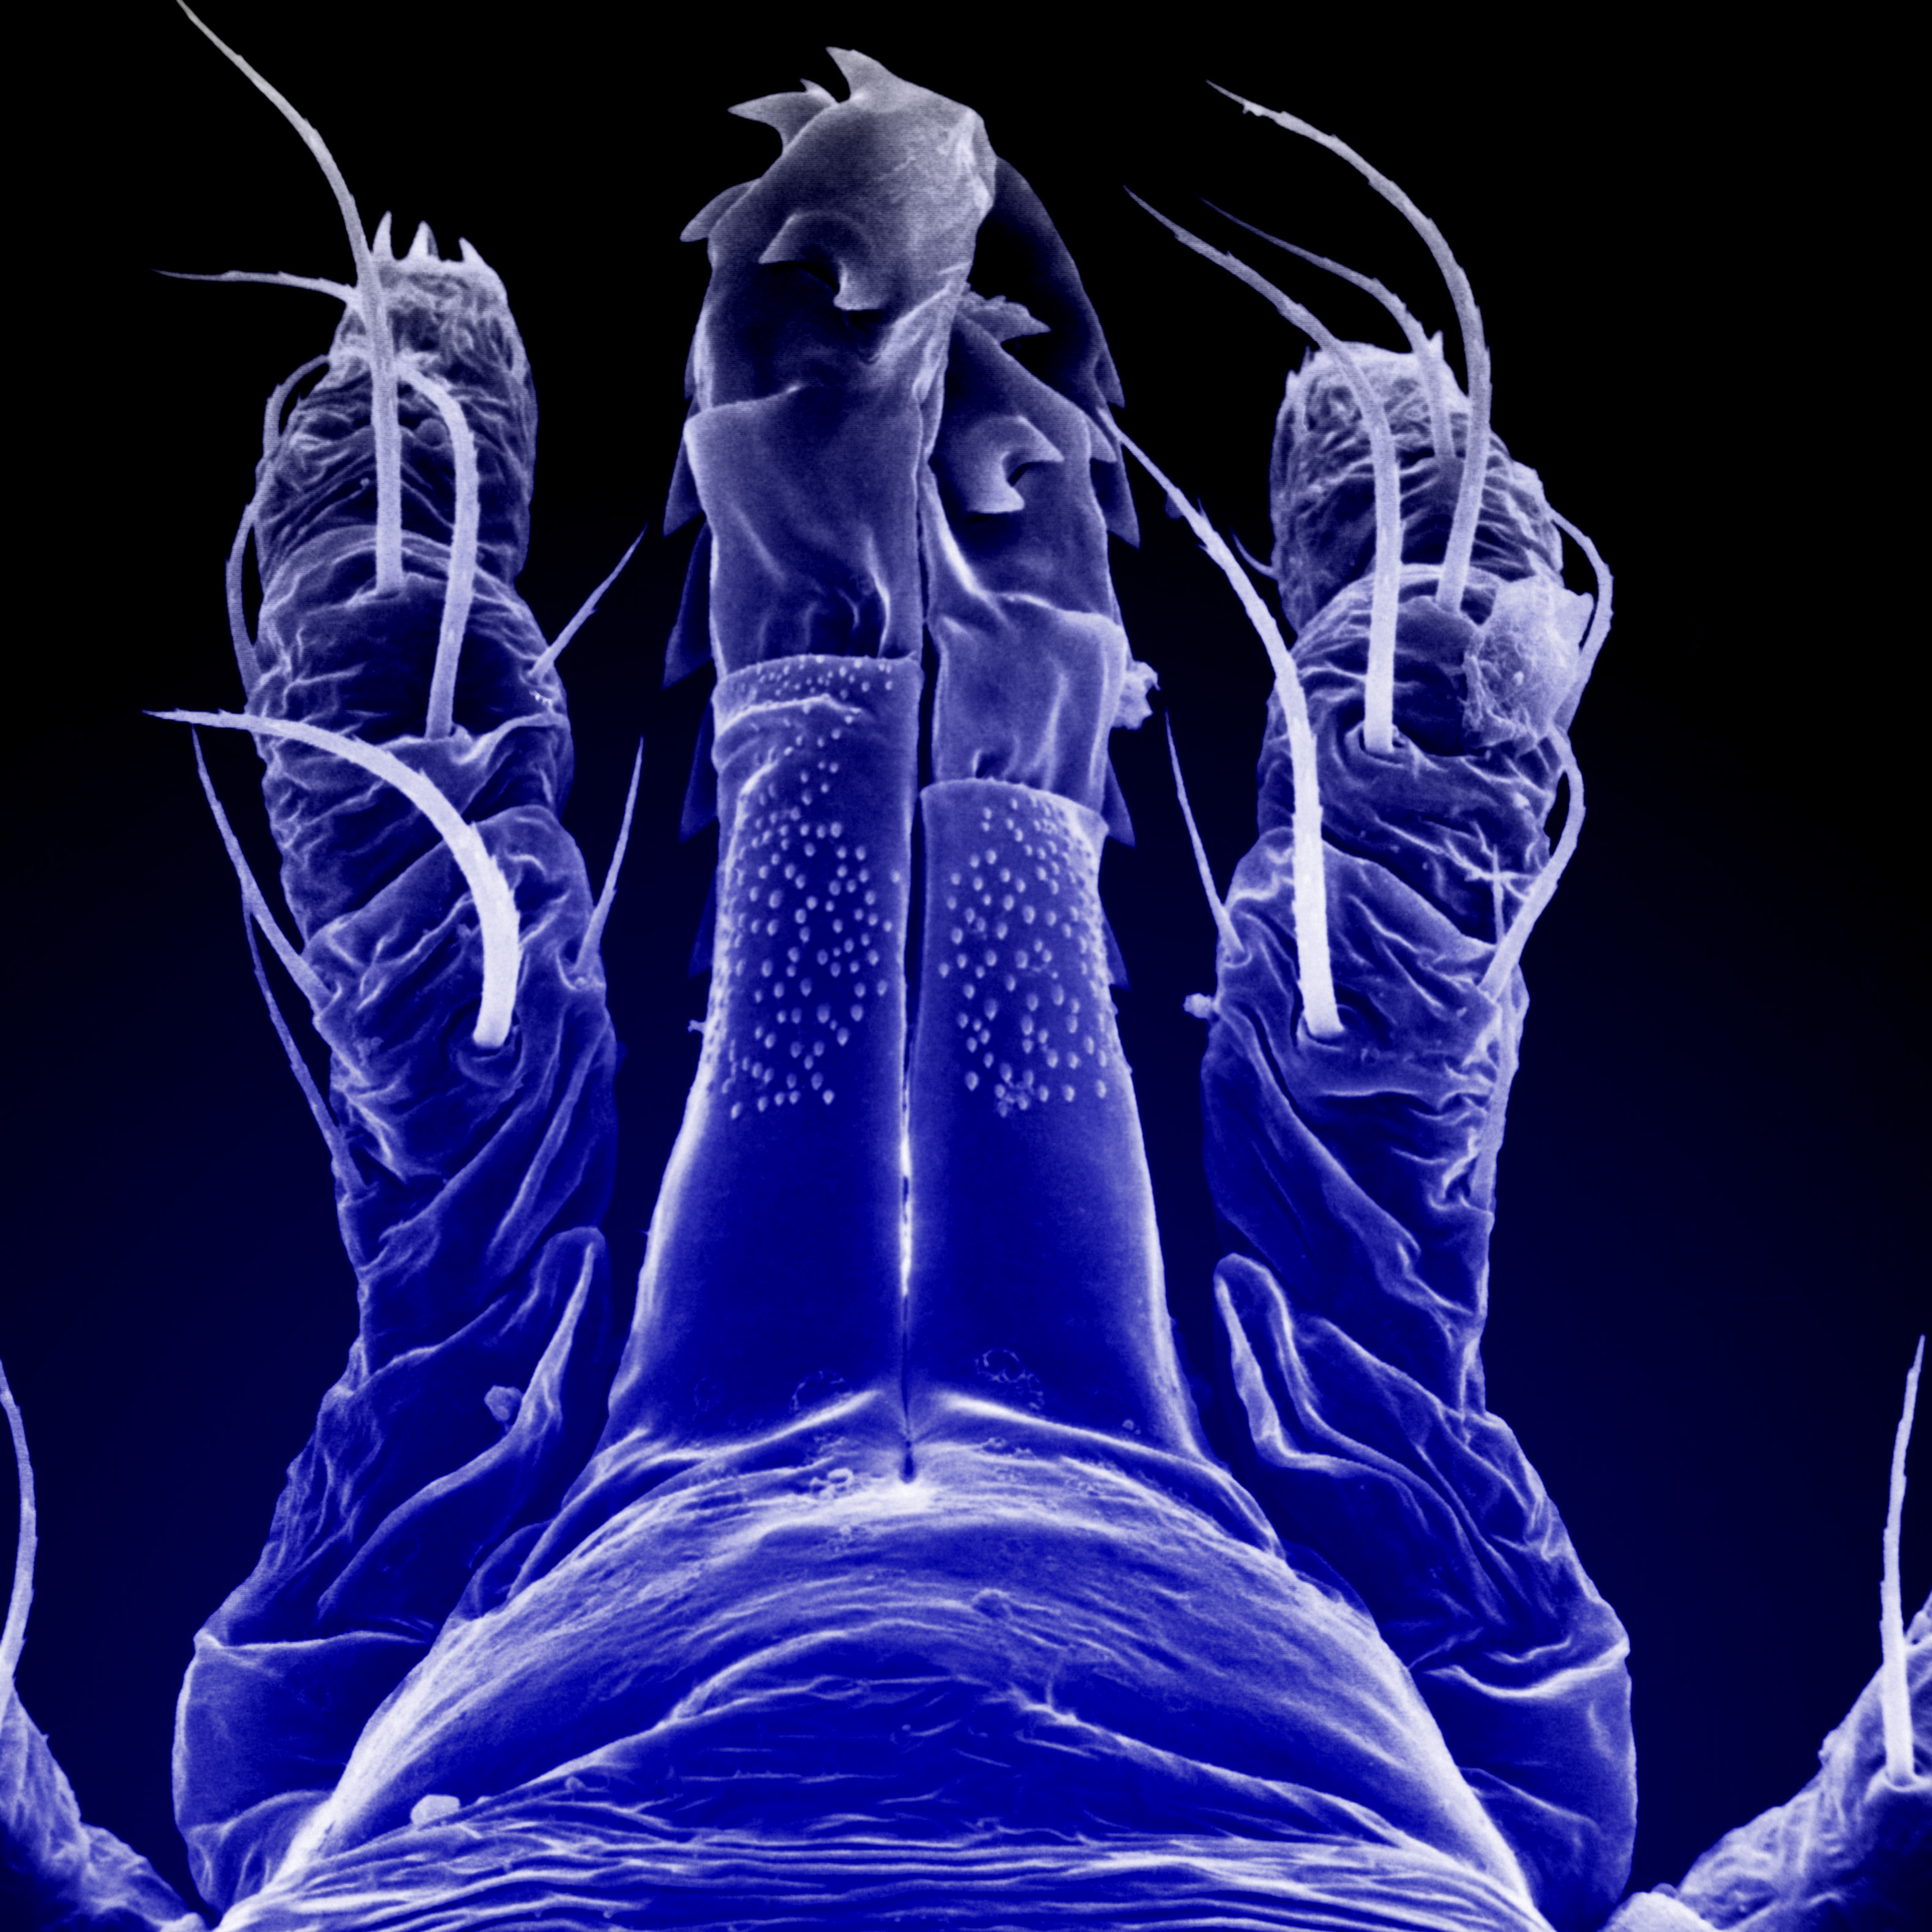 SEM-micrograph of mouth parts of ixodid tick.